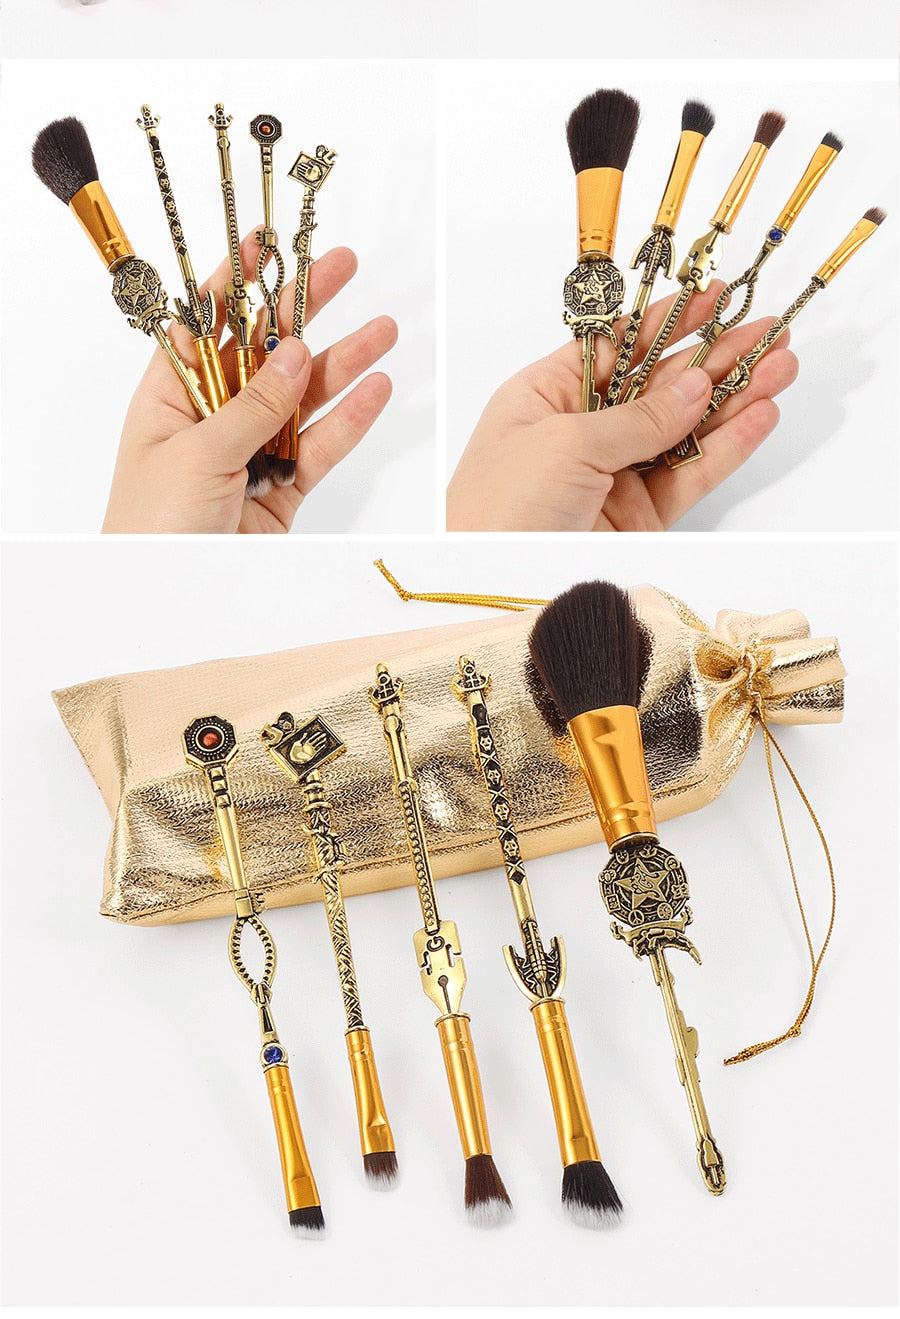 2021 New Jojos Bizarre Adventure Makeup Brush Set - Panashe Essence